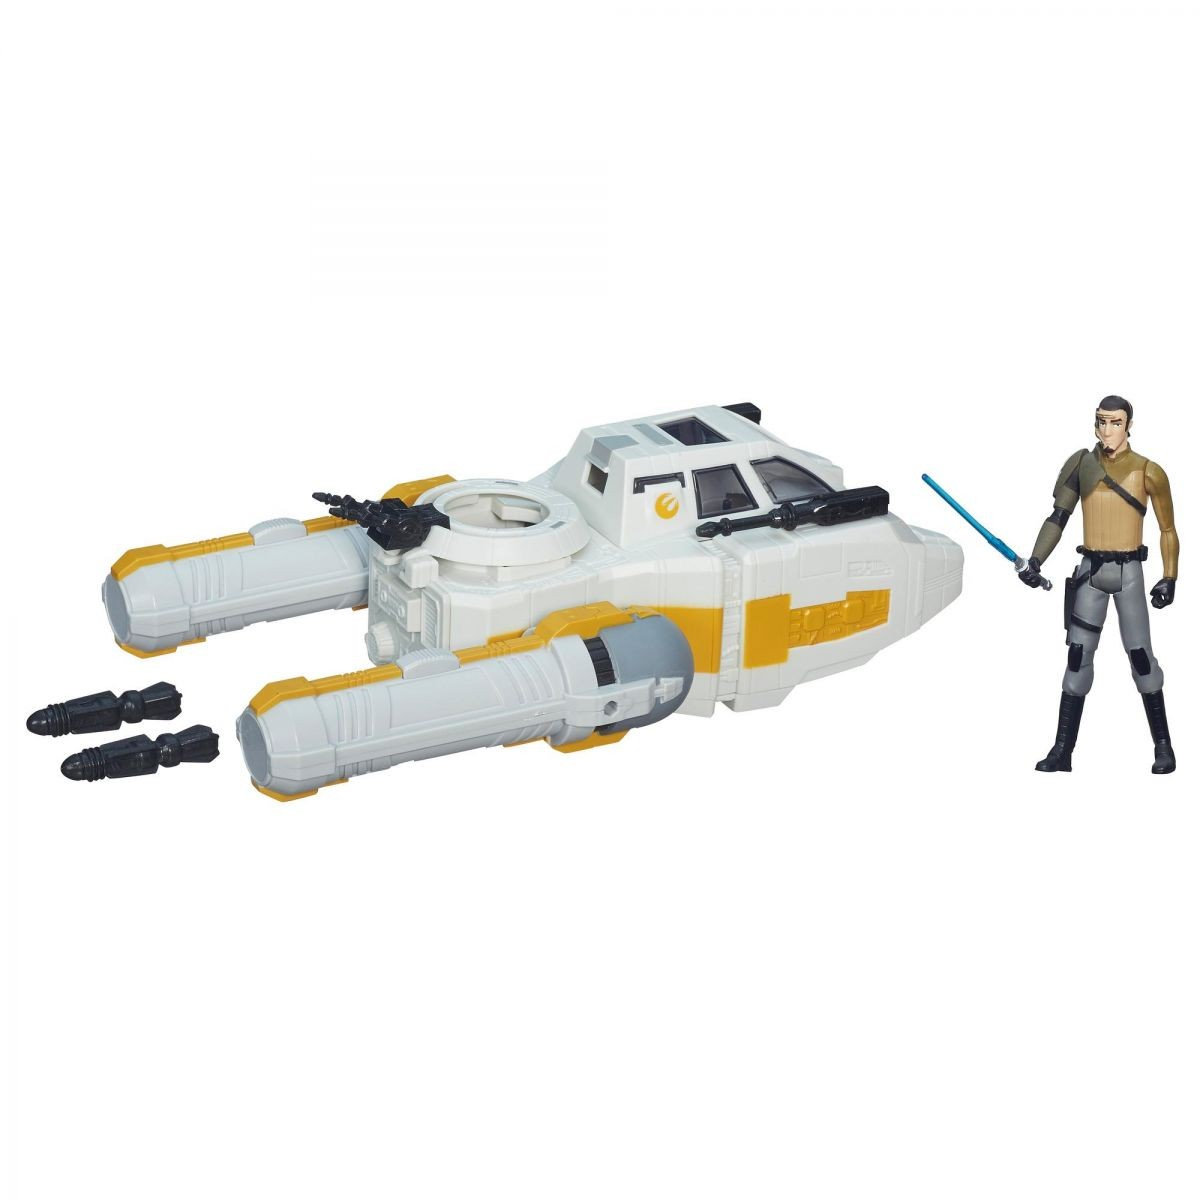 Star Wars Rebels Y-Wing - Hasbro